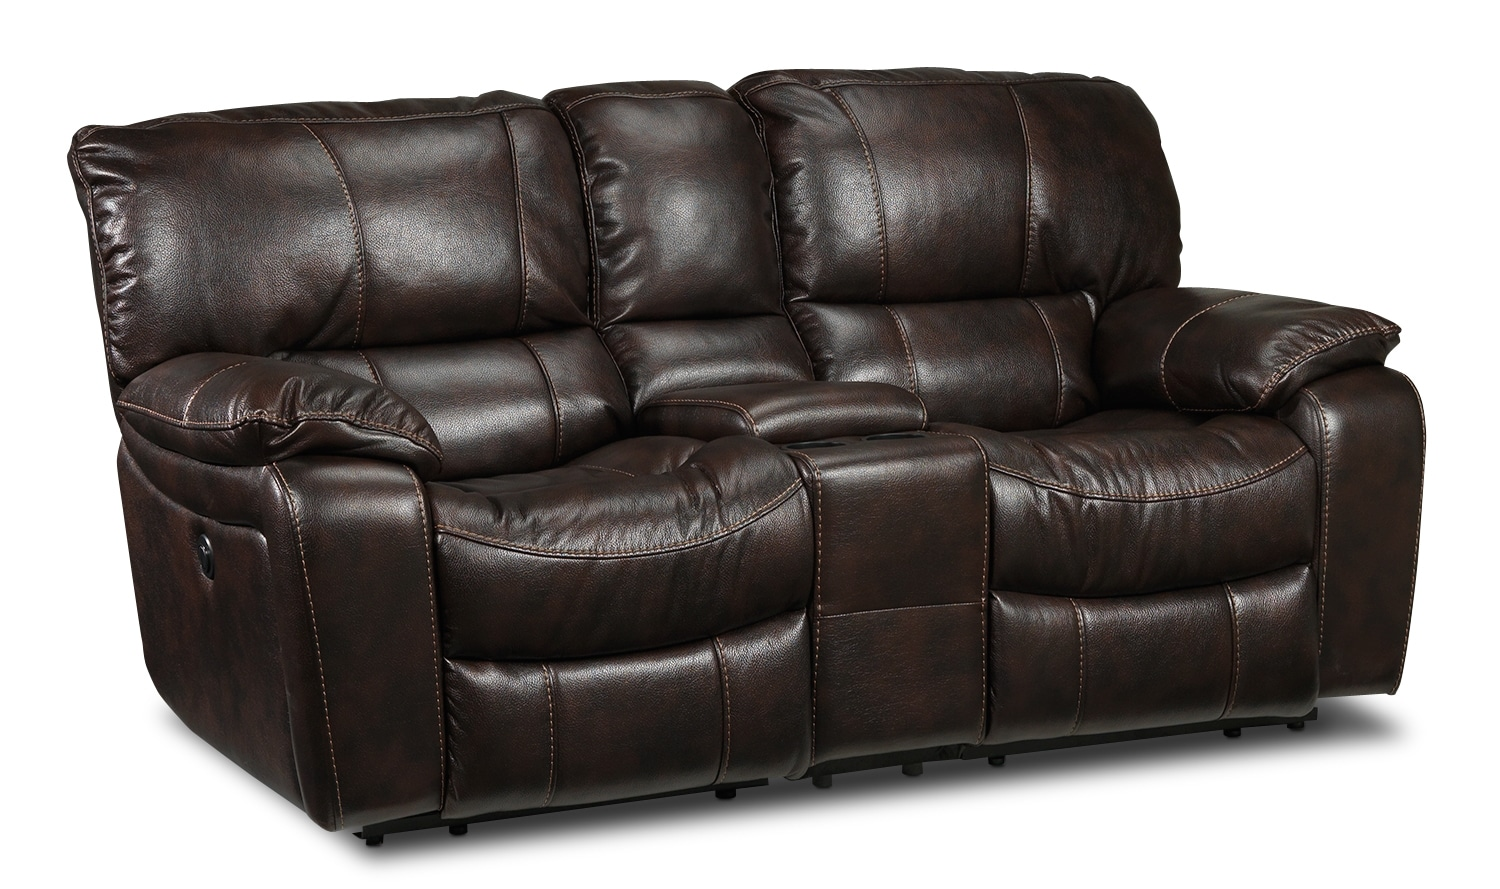 Santorini Power Reclining Loveseat - Walnut